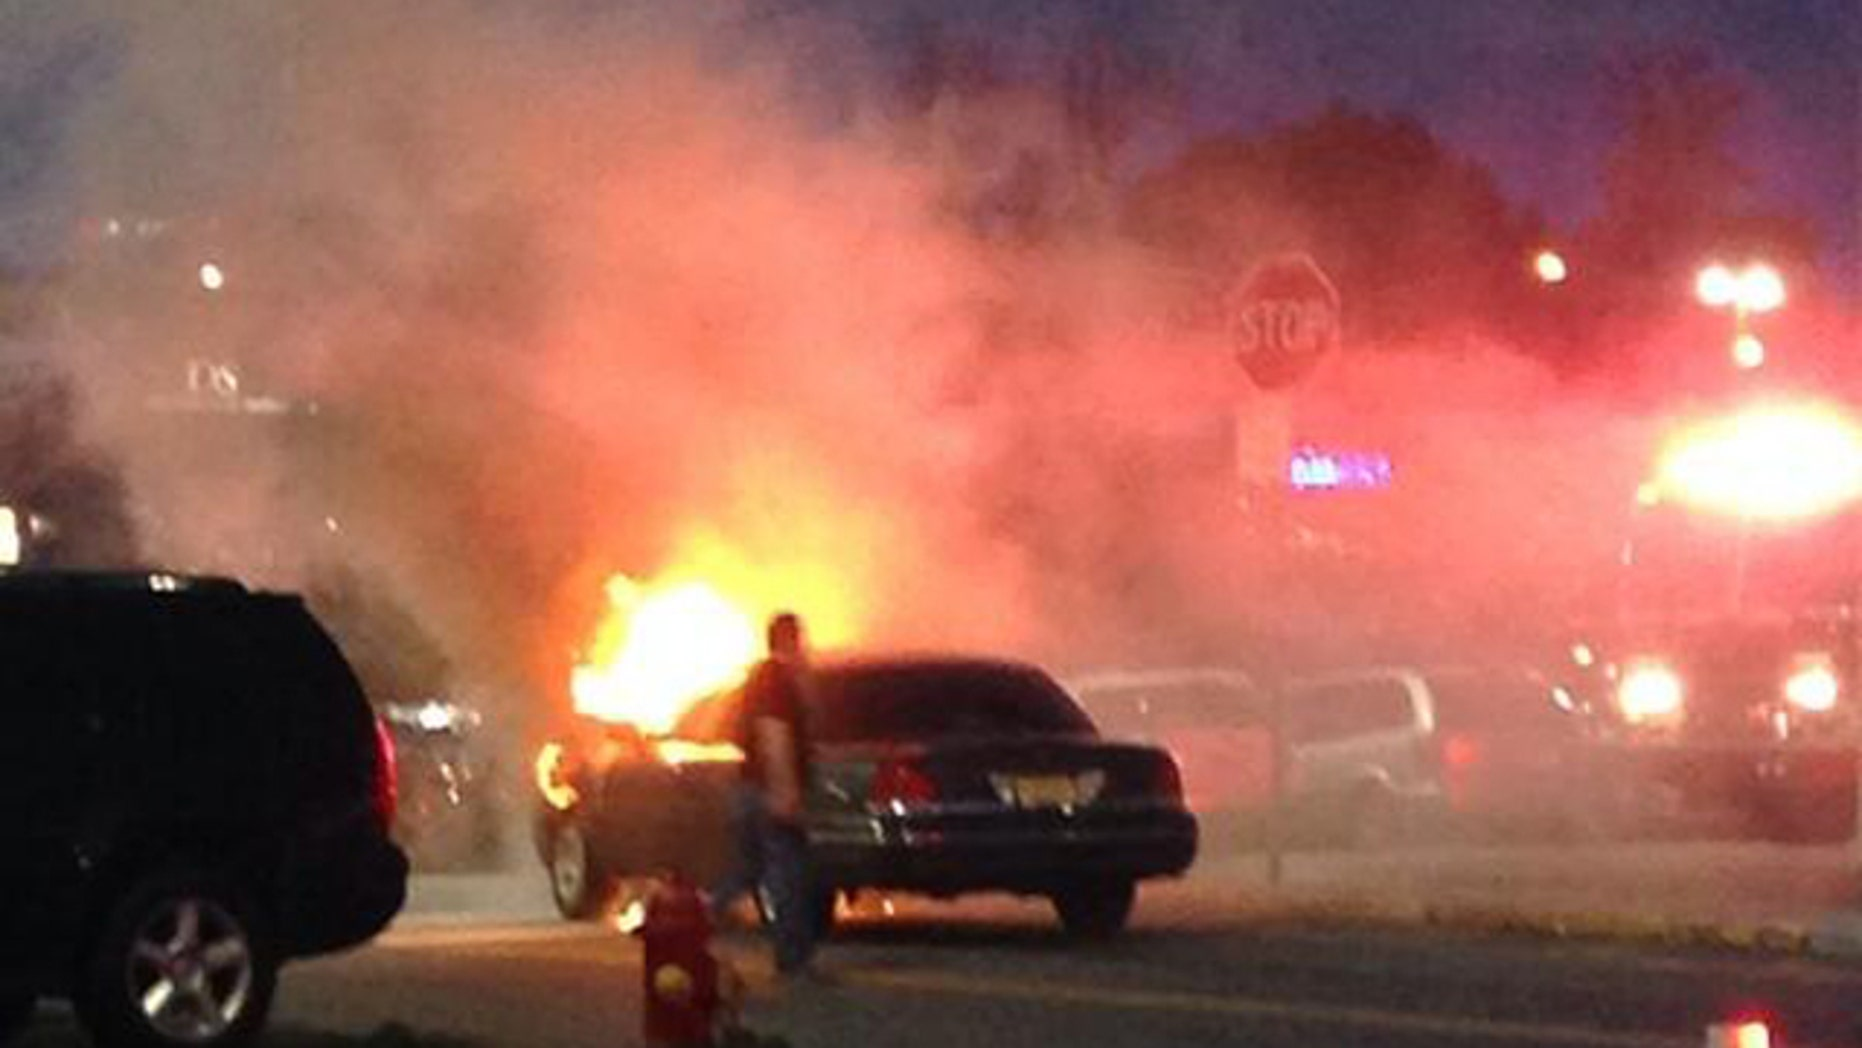 May 10, 2014: This photo provided by Brittany Berdy shows a car fire that authorities believe may have led to reports of gunshots that forced them to evacuate the Garden State Plaza mall in Paramus, N.J. New Jersey State Police Capt. Stephen Jones said that police have found no evidence that any shots were fired at the mall Saturday night. (AP Photo/Brittany Berdy)